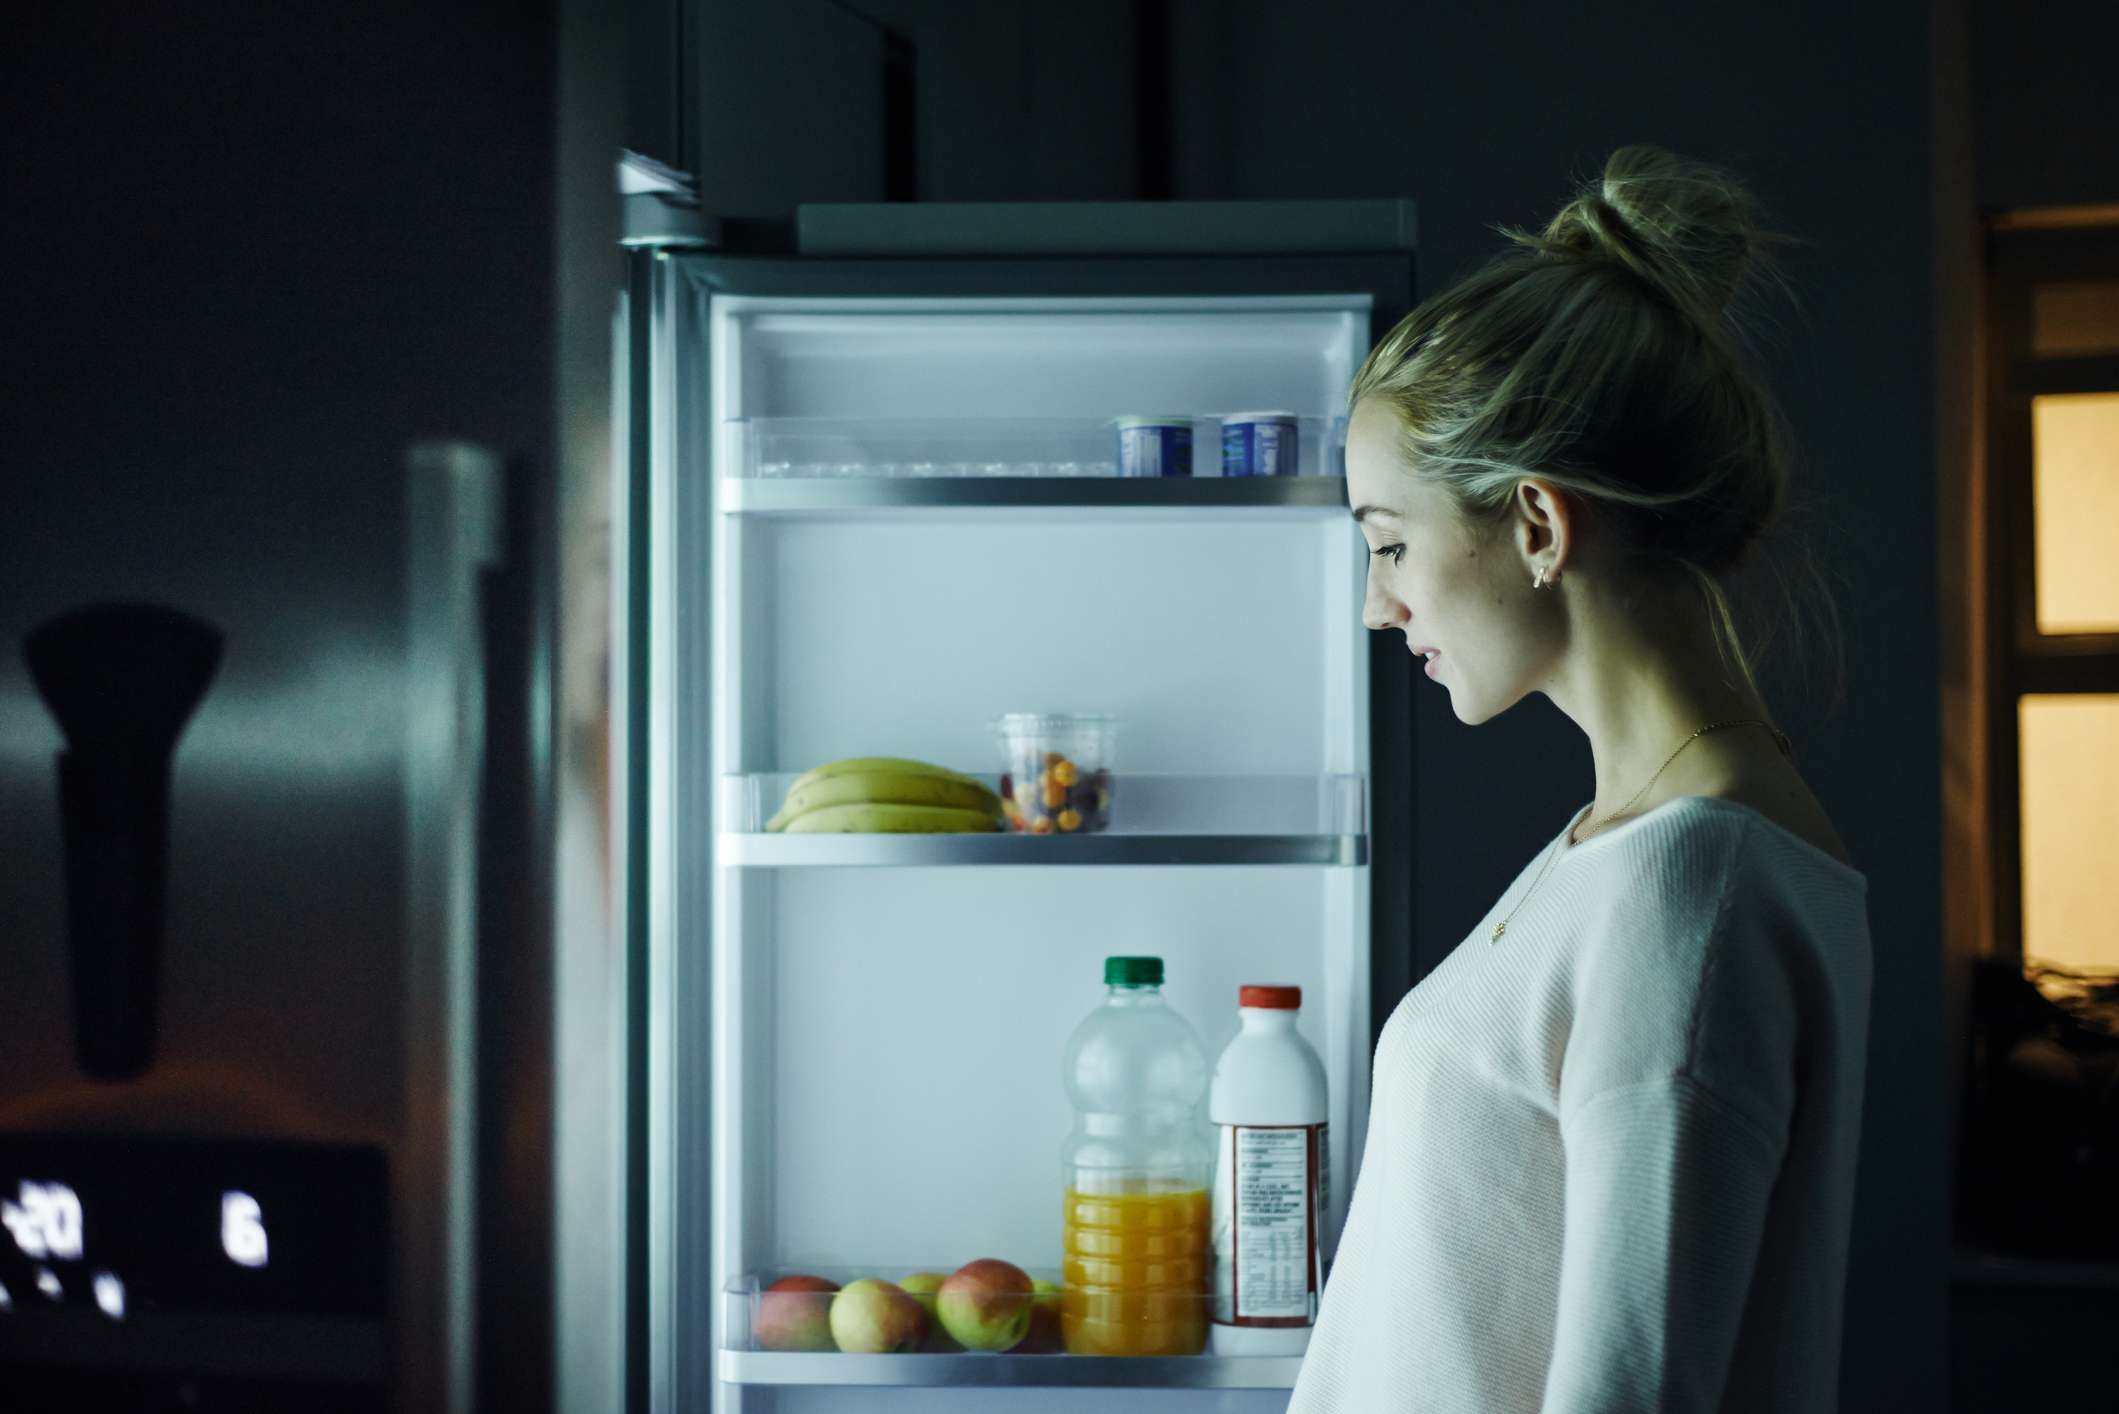 Shot of a young woman opening the fridge at night in her home